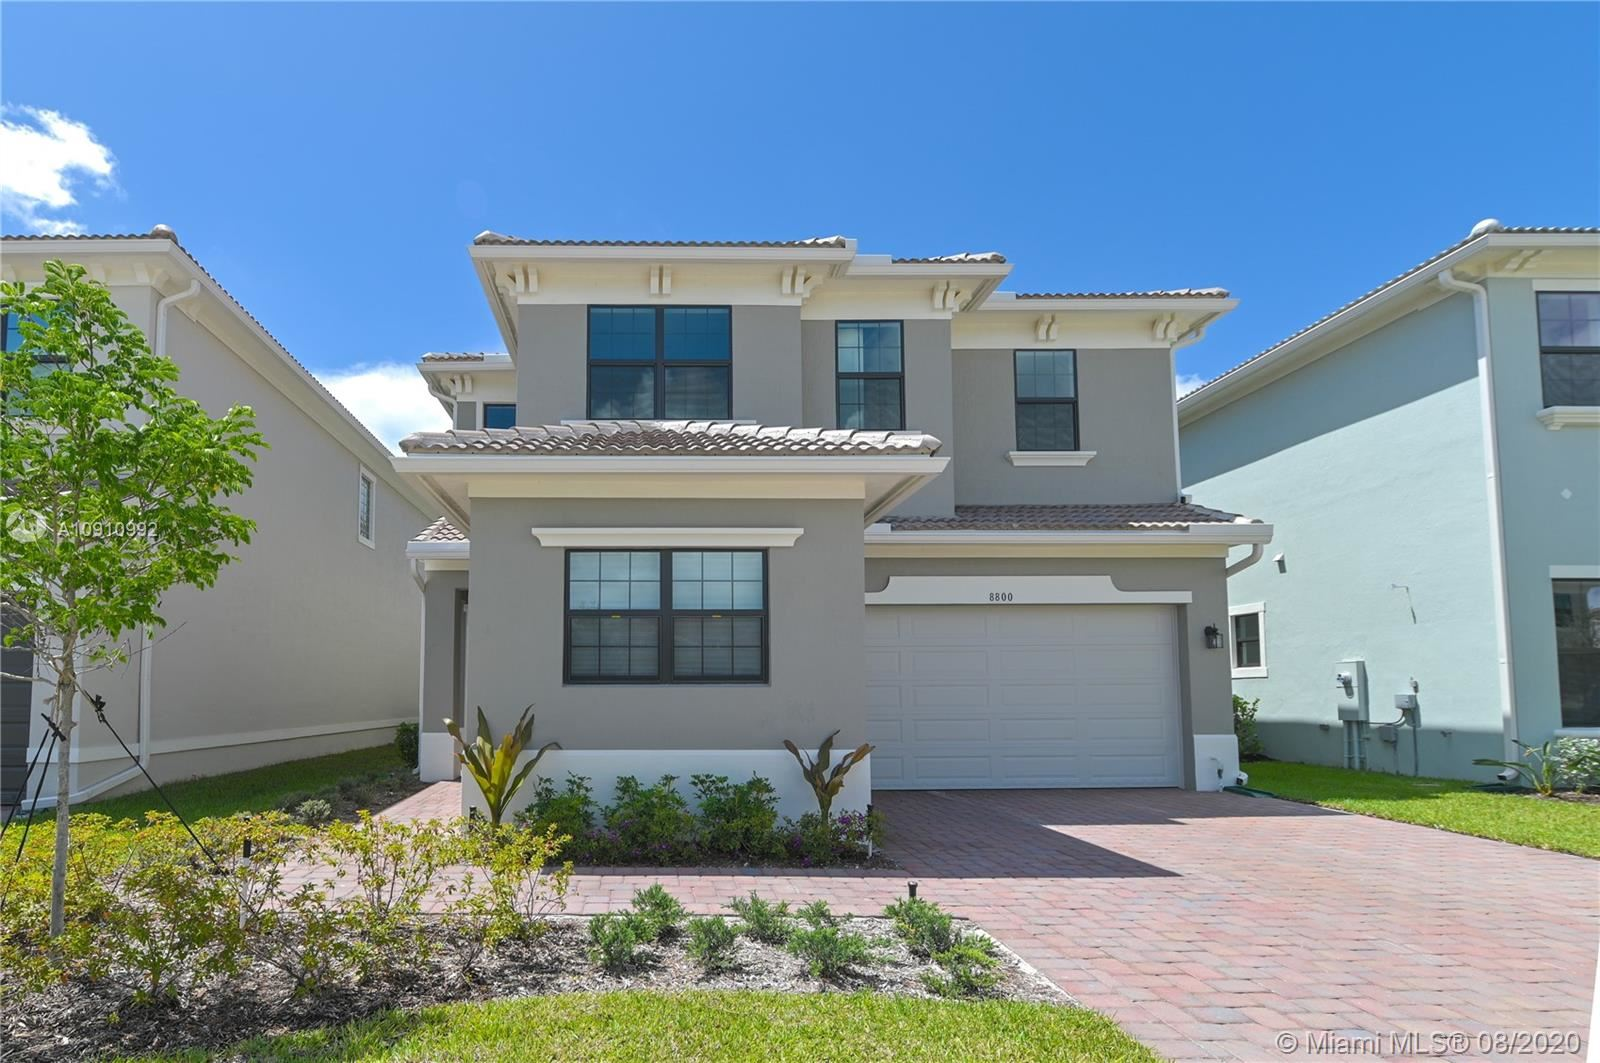 8800 NW 37th Dr, Coral Springs, FL 33065 - #: A10910992